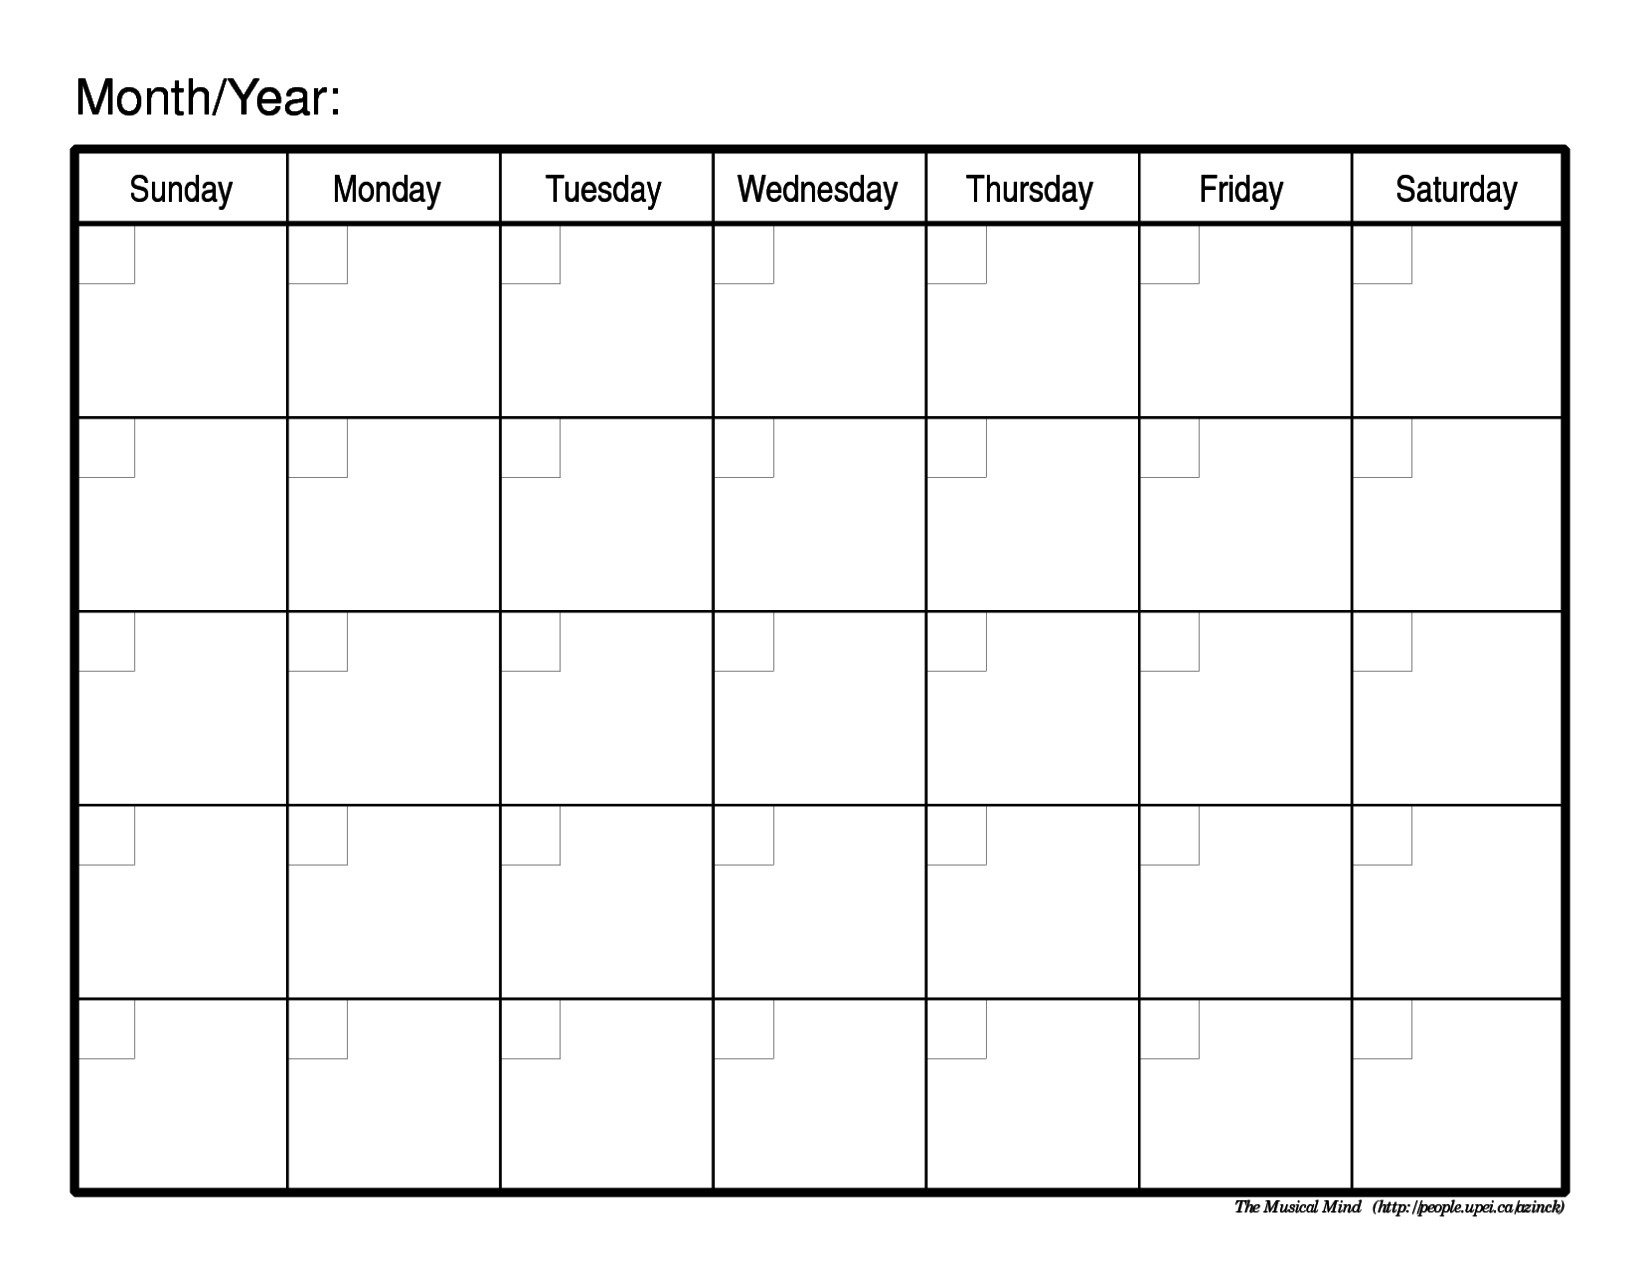 Schedule Template Free Blank Printable R Aaron The Artist Weekly within Empty Monthly Calendar Print Out